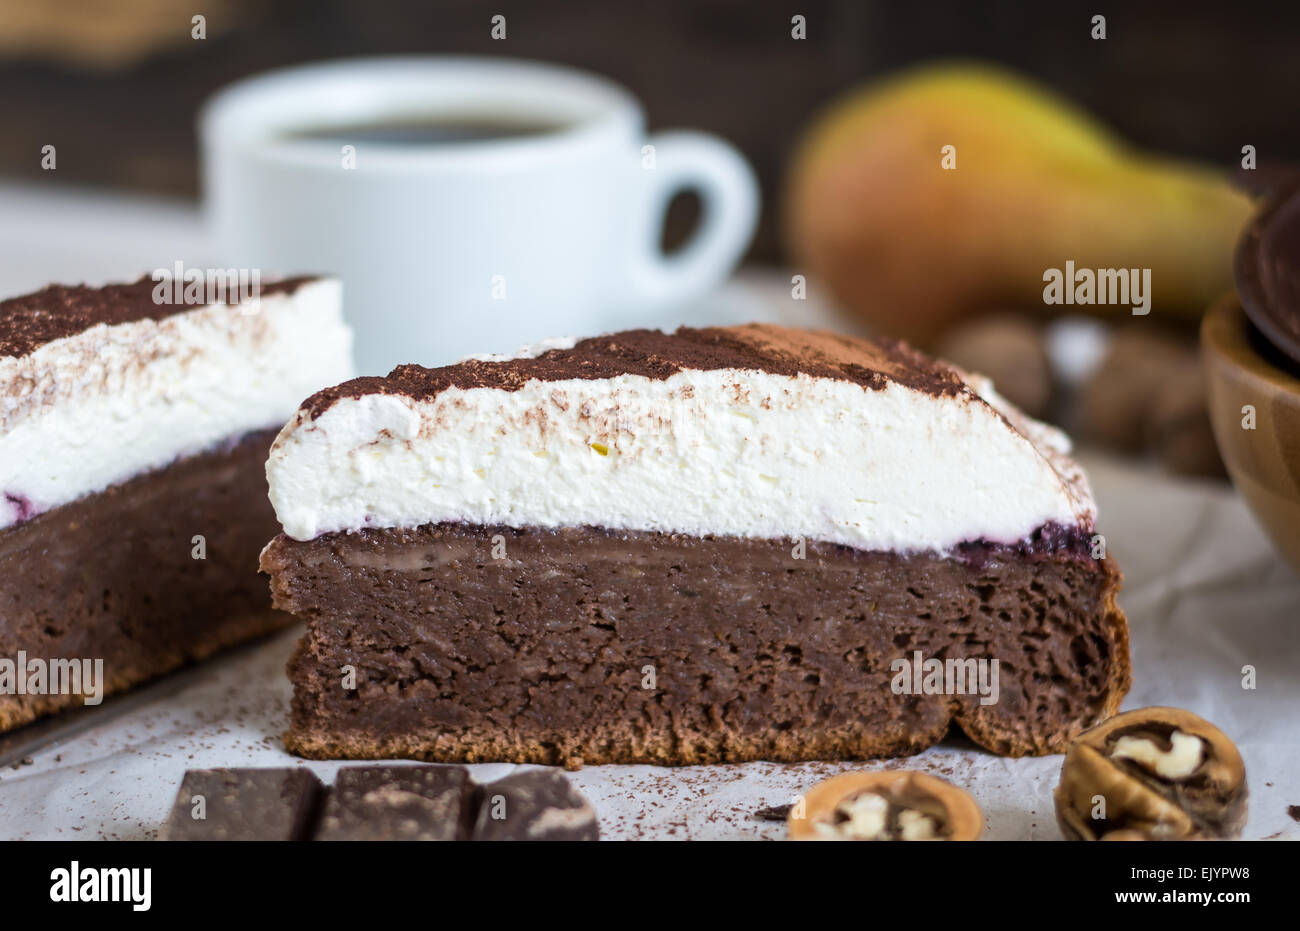 Chocolate Cake with Whipped Cream Dusted with Cocoa and Cup of Coffee Close Up - Stock Image